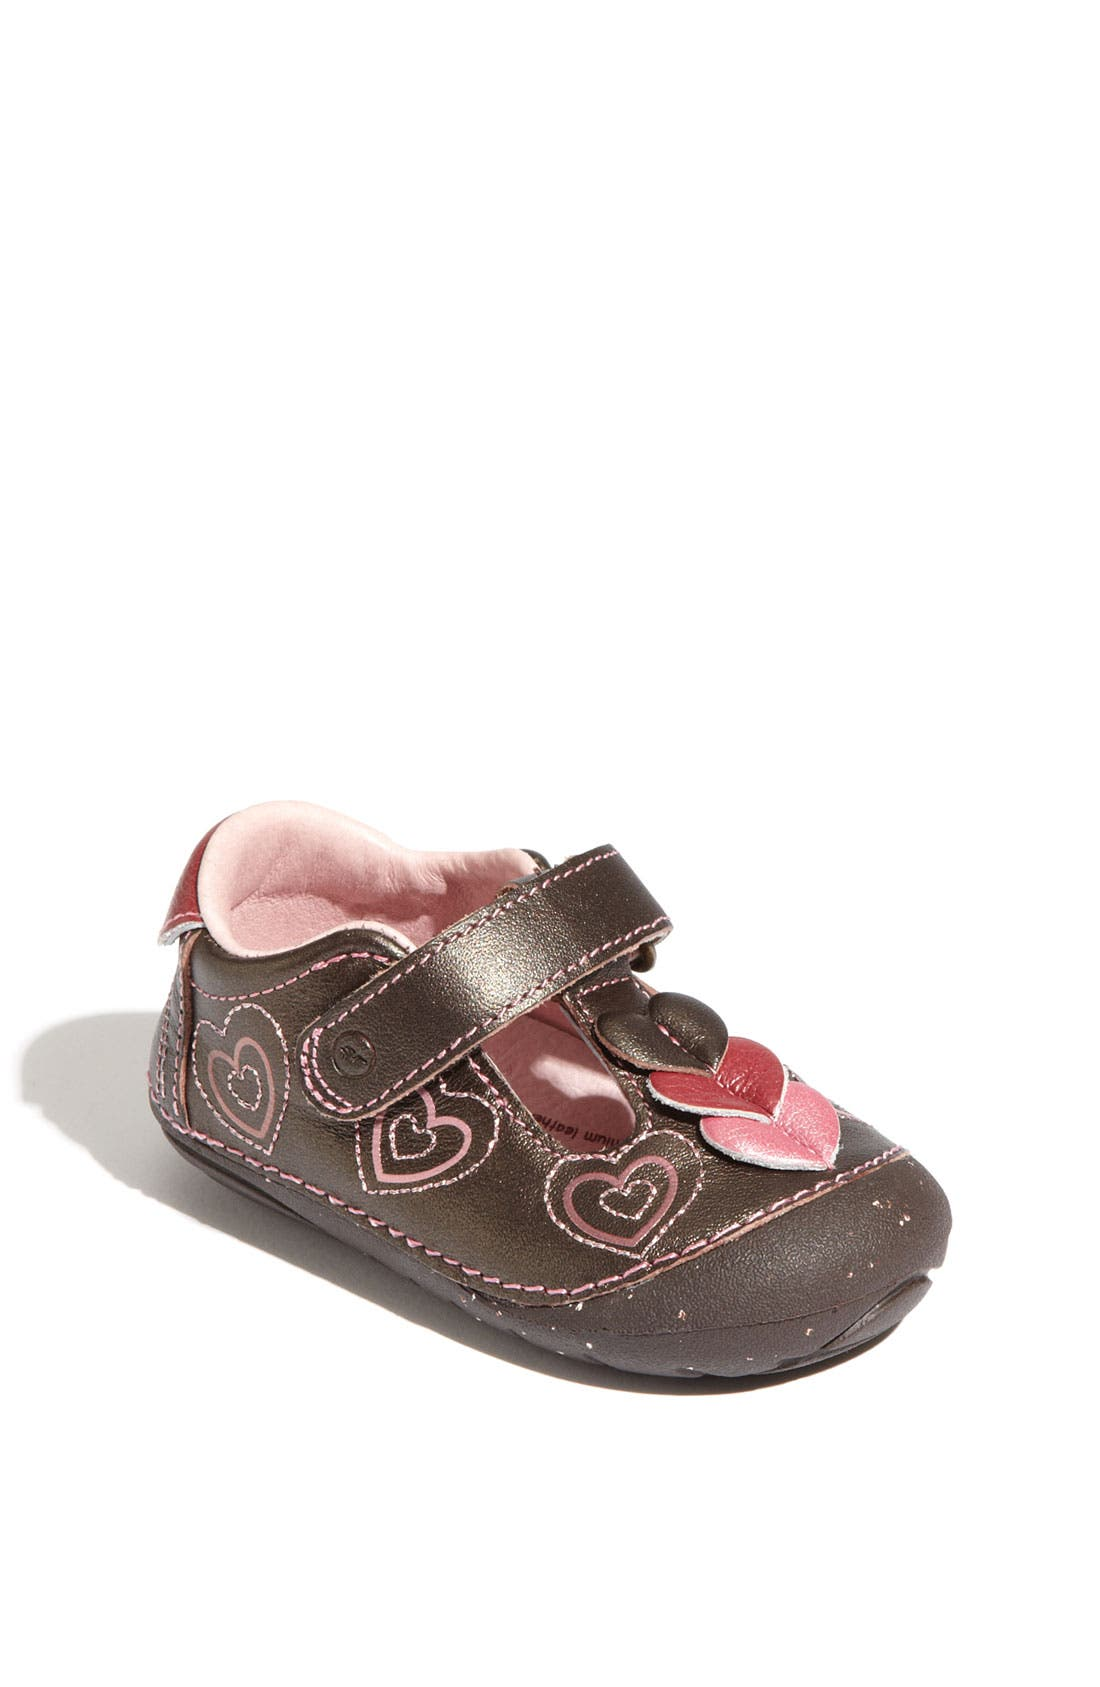 Alternate Image 1 Selected - Stride Rite 'Ava' T-Strap Mary Jane (Baby & Walker)